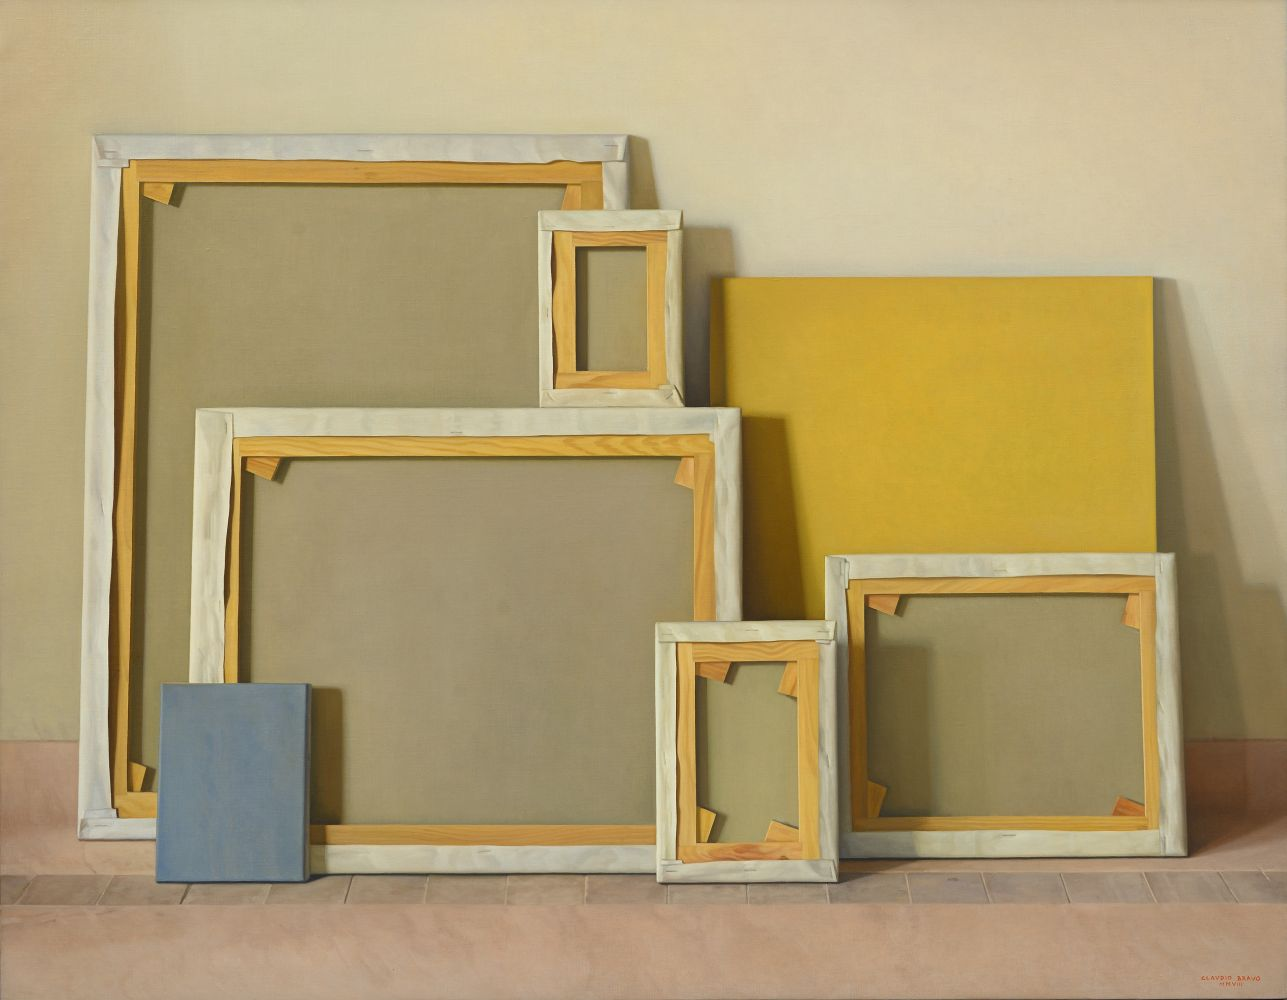 Stretchers, 2008, oil on canvas, 44 7/8 x 57 5/8 inches